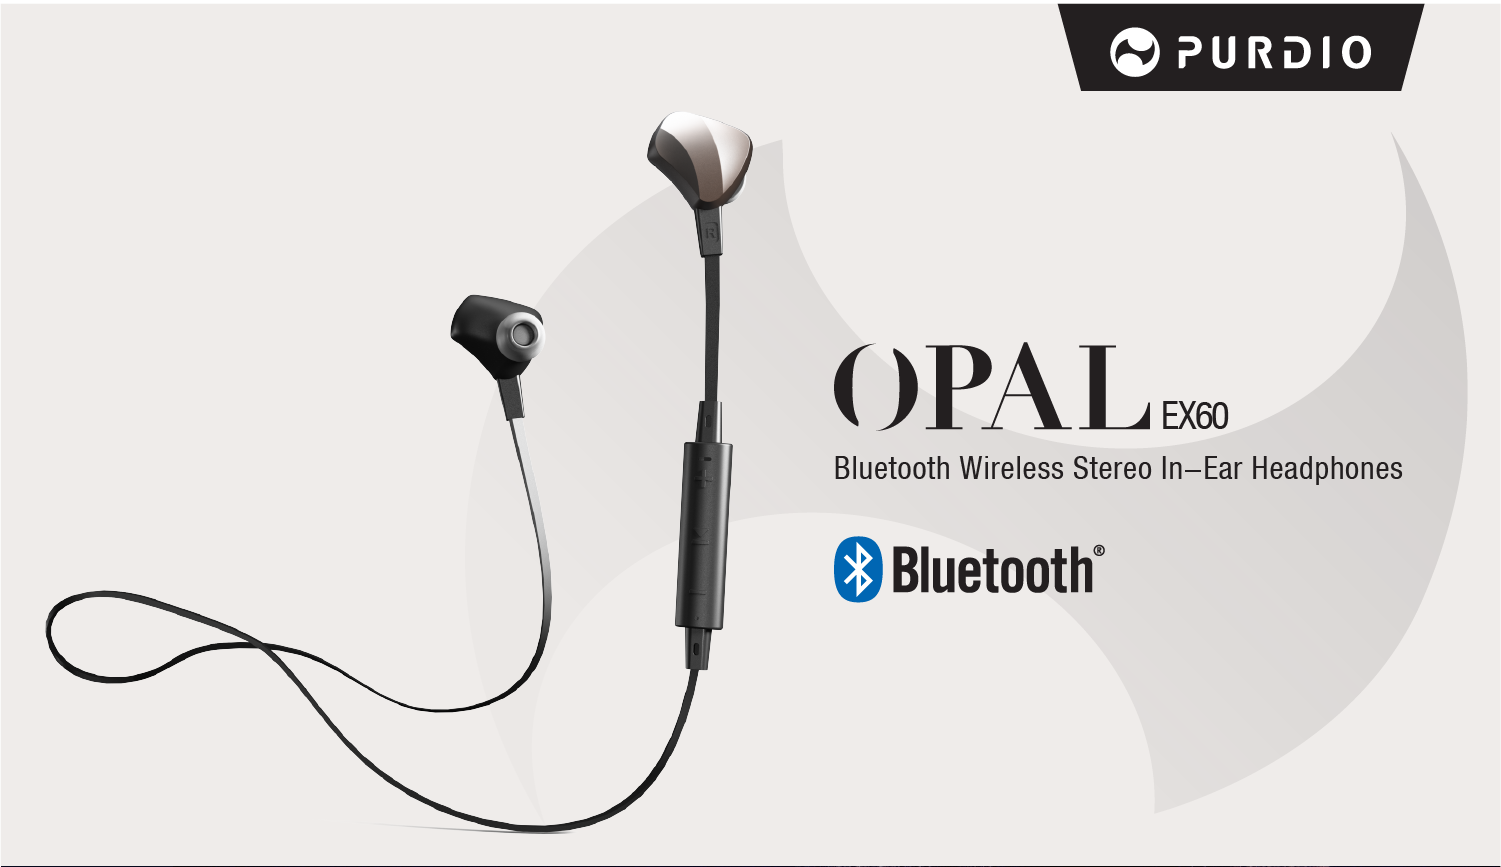 Purdio Opal Bluetooth Wireless In ear Headphones best audio budget earphones